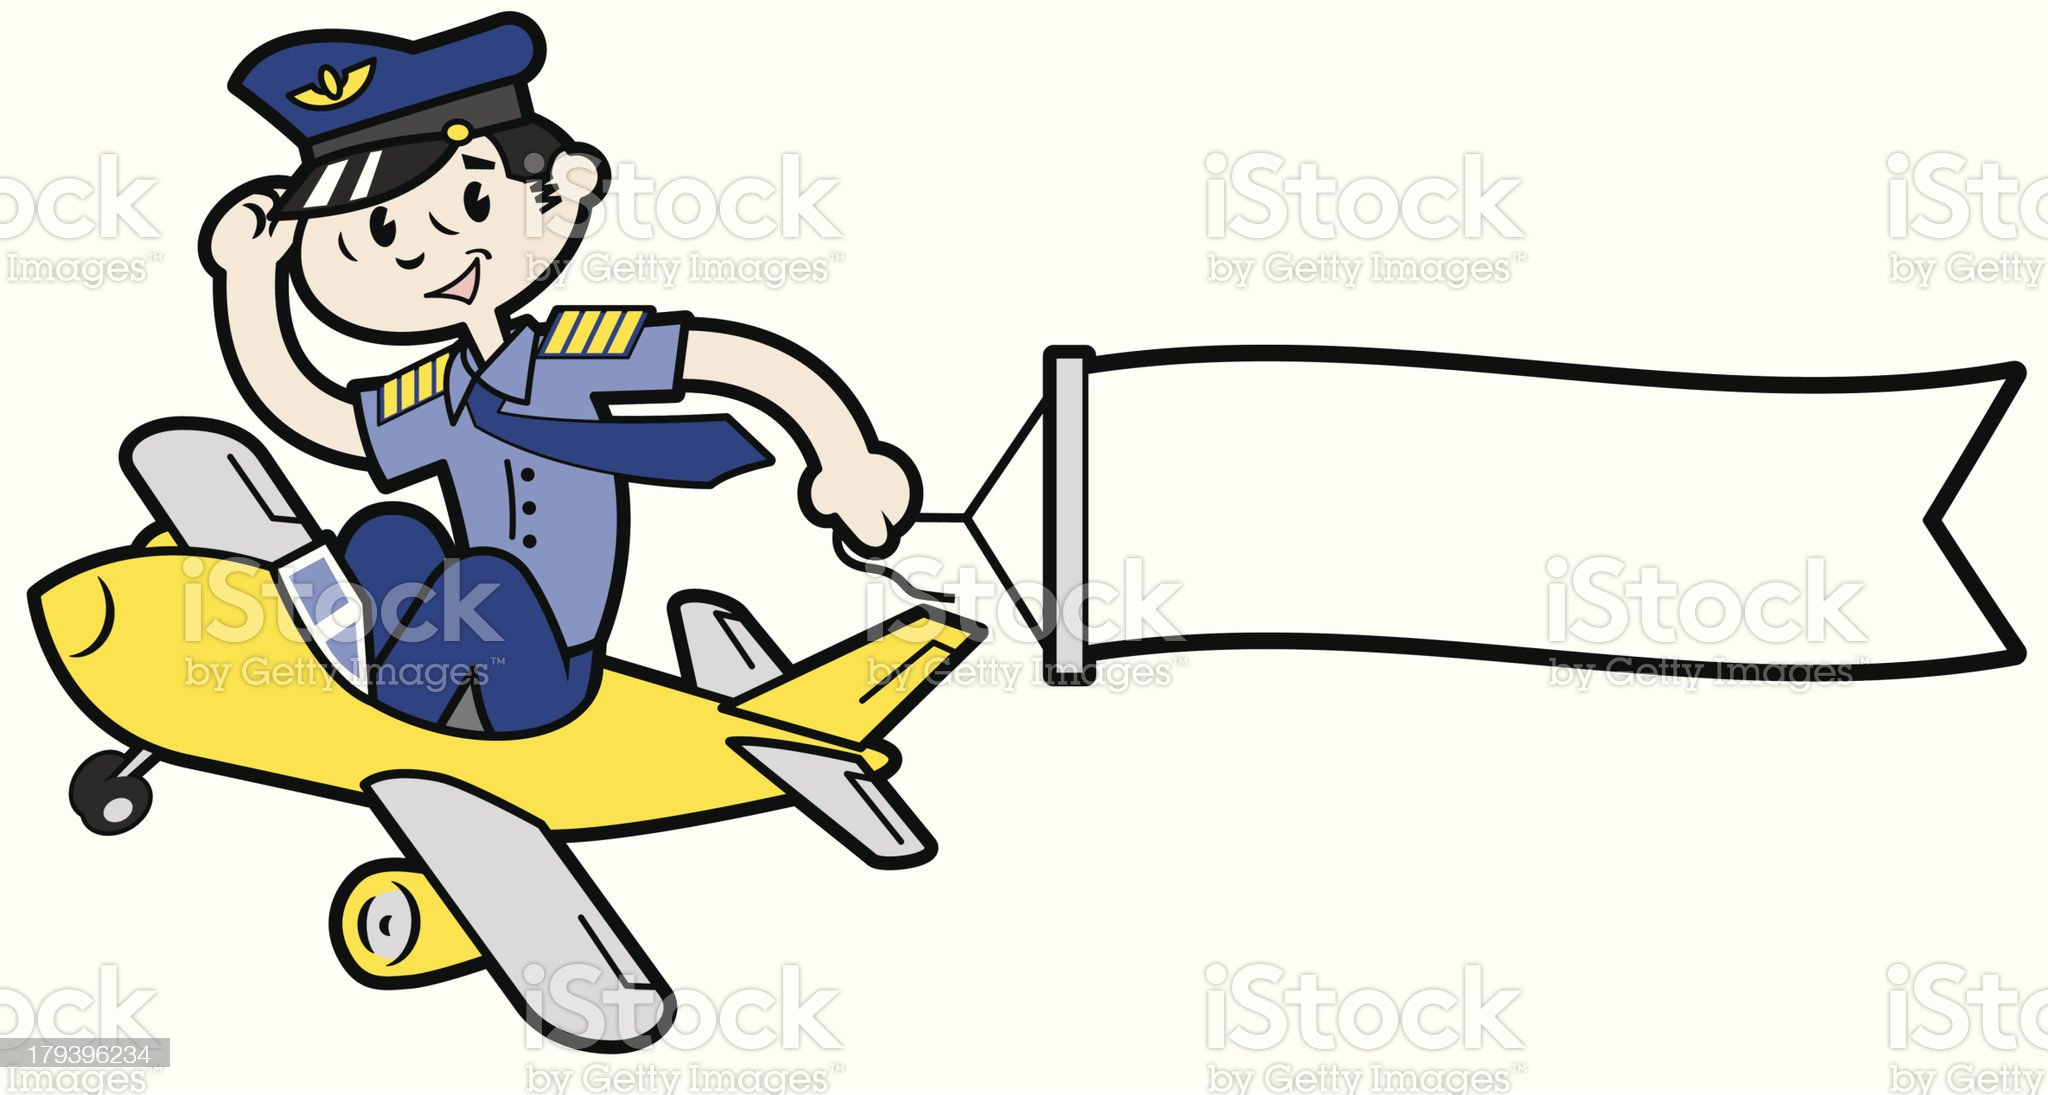 Pilot in a comicalally small plane towing banner royalty-free stock vector art